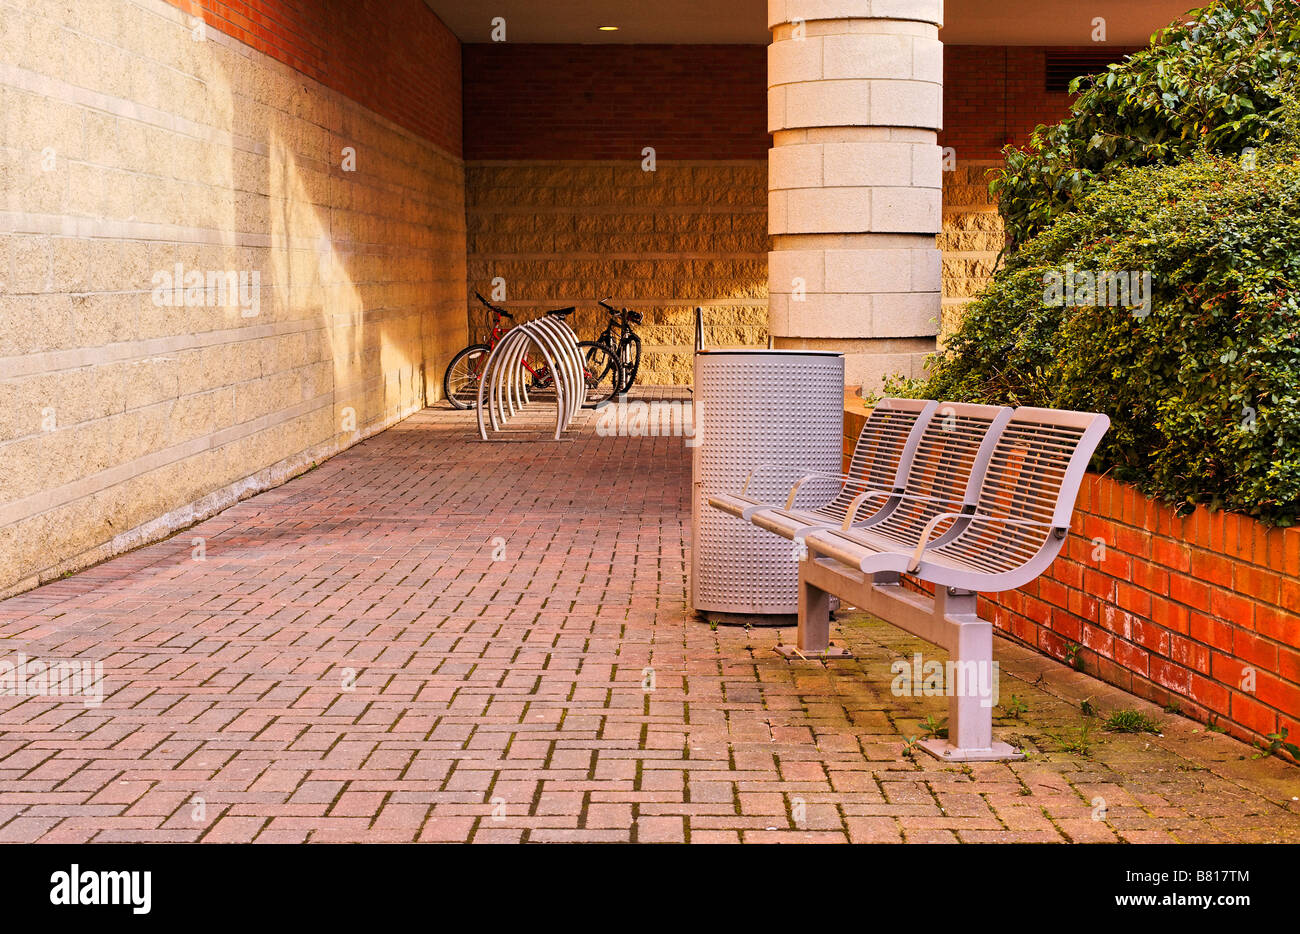 Bicycle parking and street furniture in Newcastle upon-Tyne - Stock Image